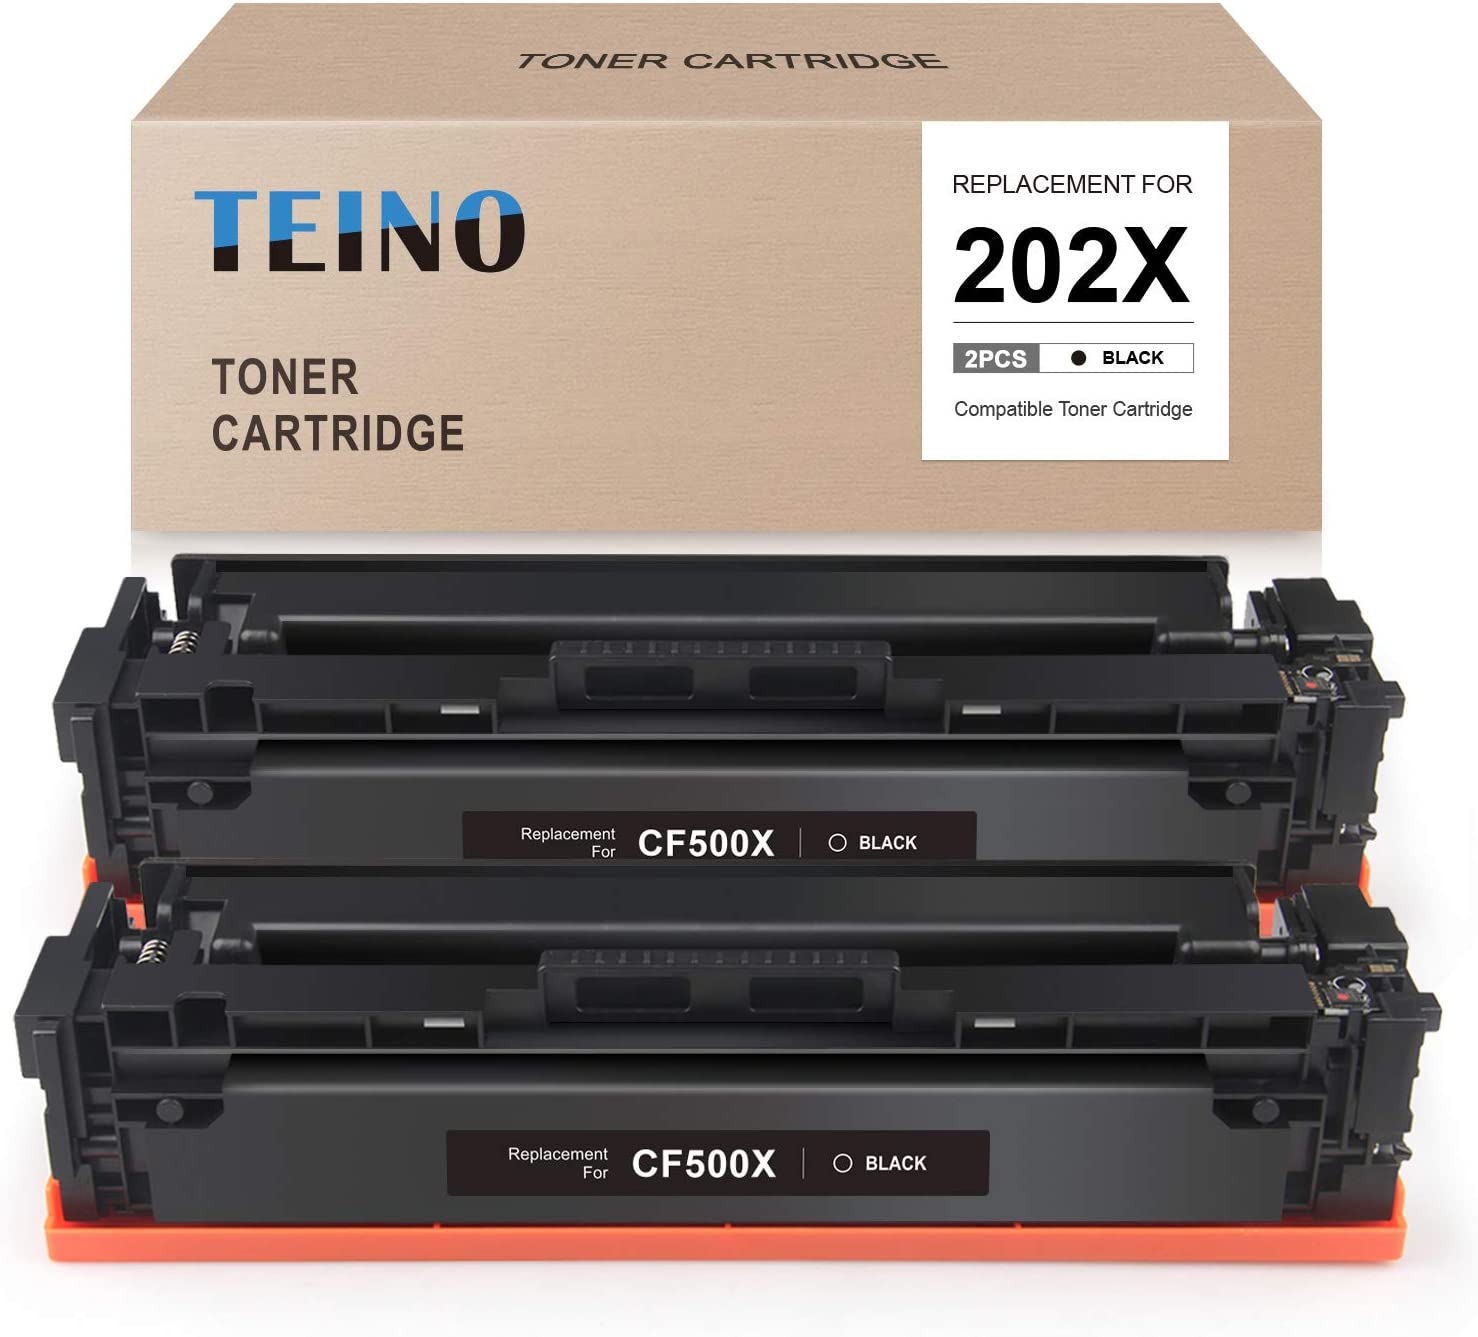 TEINO Compatible Toner Cartridge Replacement for HP 202A 202X CF500A CF500X use with HP Color Laserjet Pro MFP M281fdw M281cdw M254dw M254nw M281dw M280nw M254dn M281fdn (Black, 2-Pack)